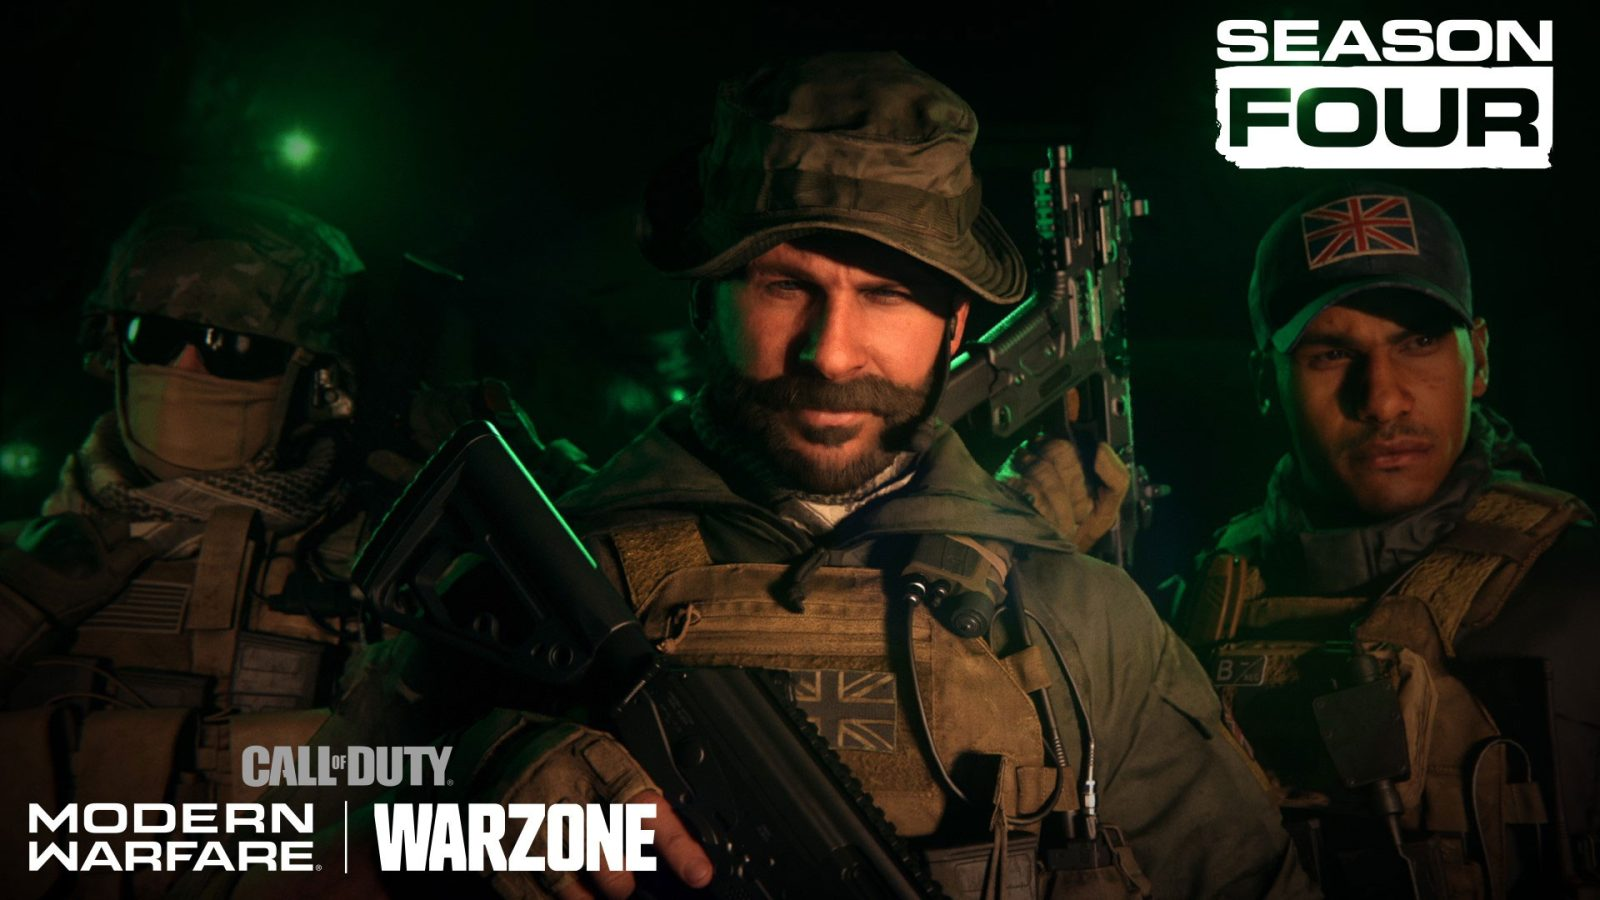 Modern Warfare Season 4 comes June 3, here's what we know - 9to5Toys